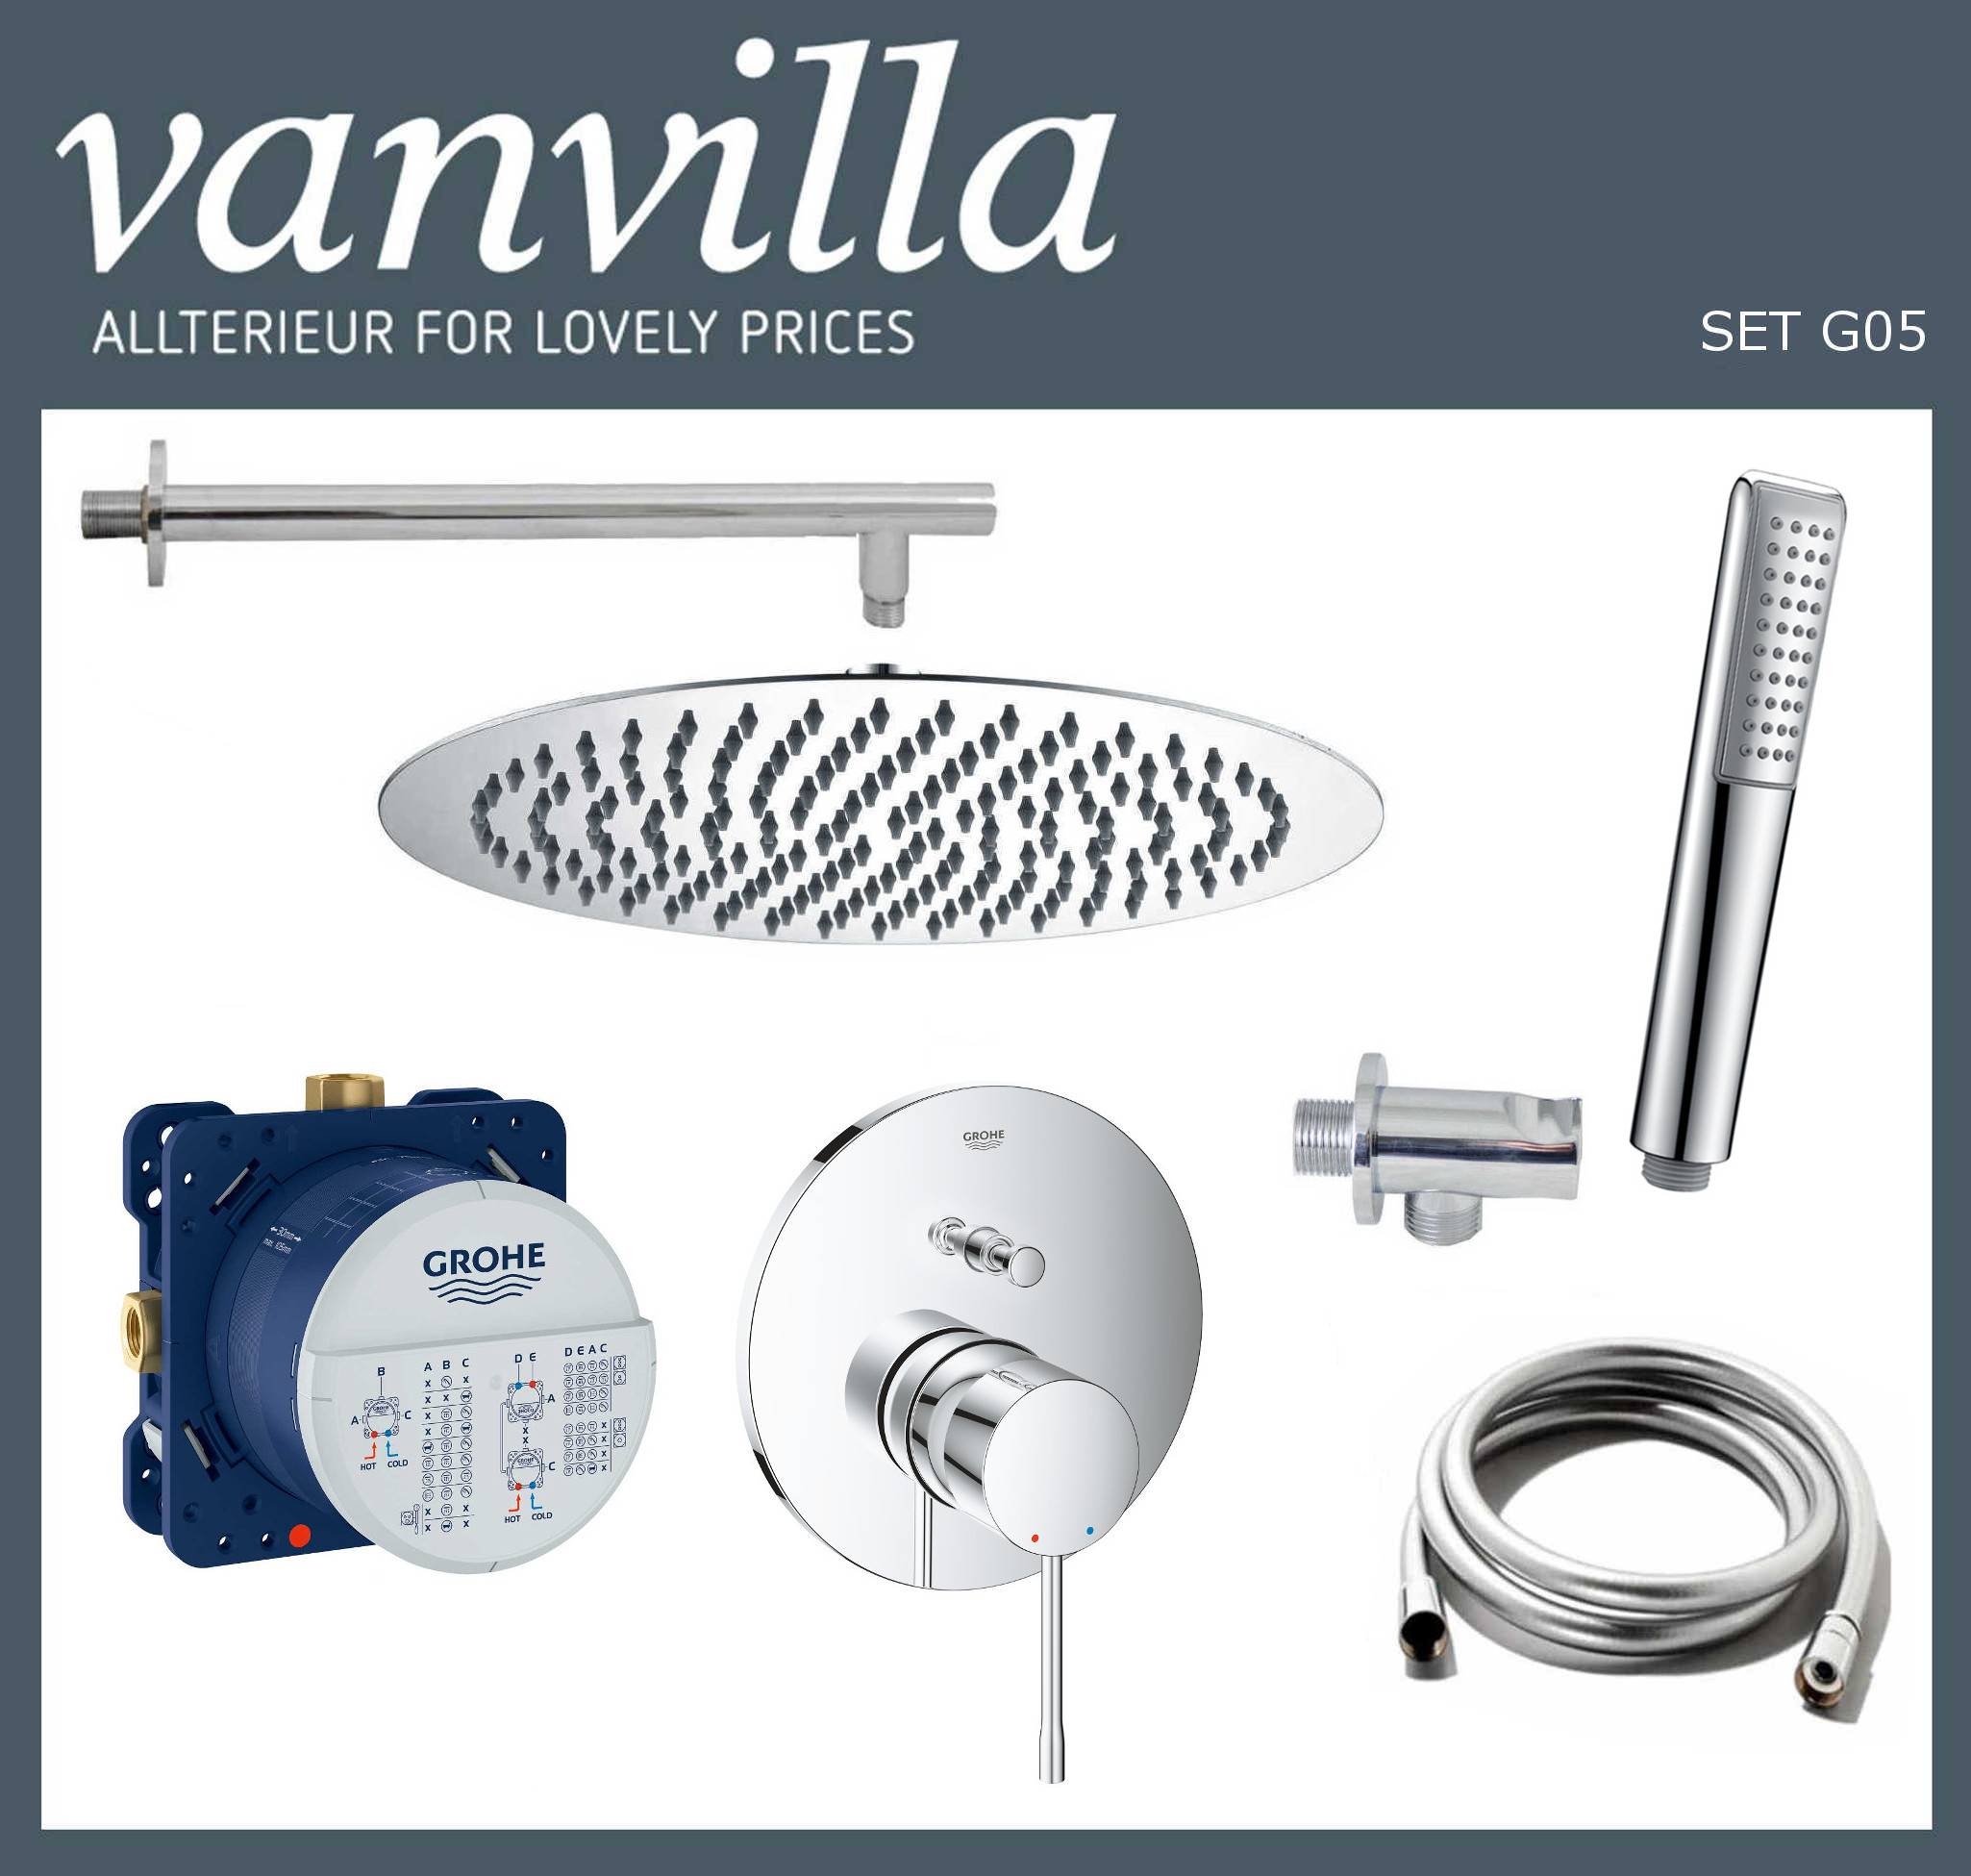 SET G05 UP vanvilla mit Duscharmatur Grohe Essence Mischer